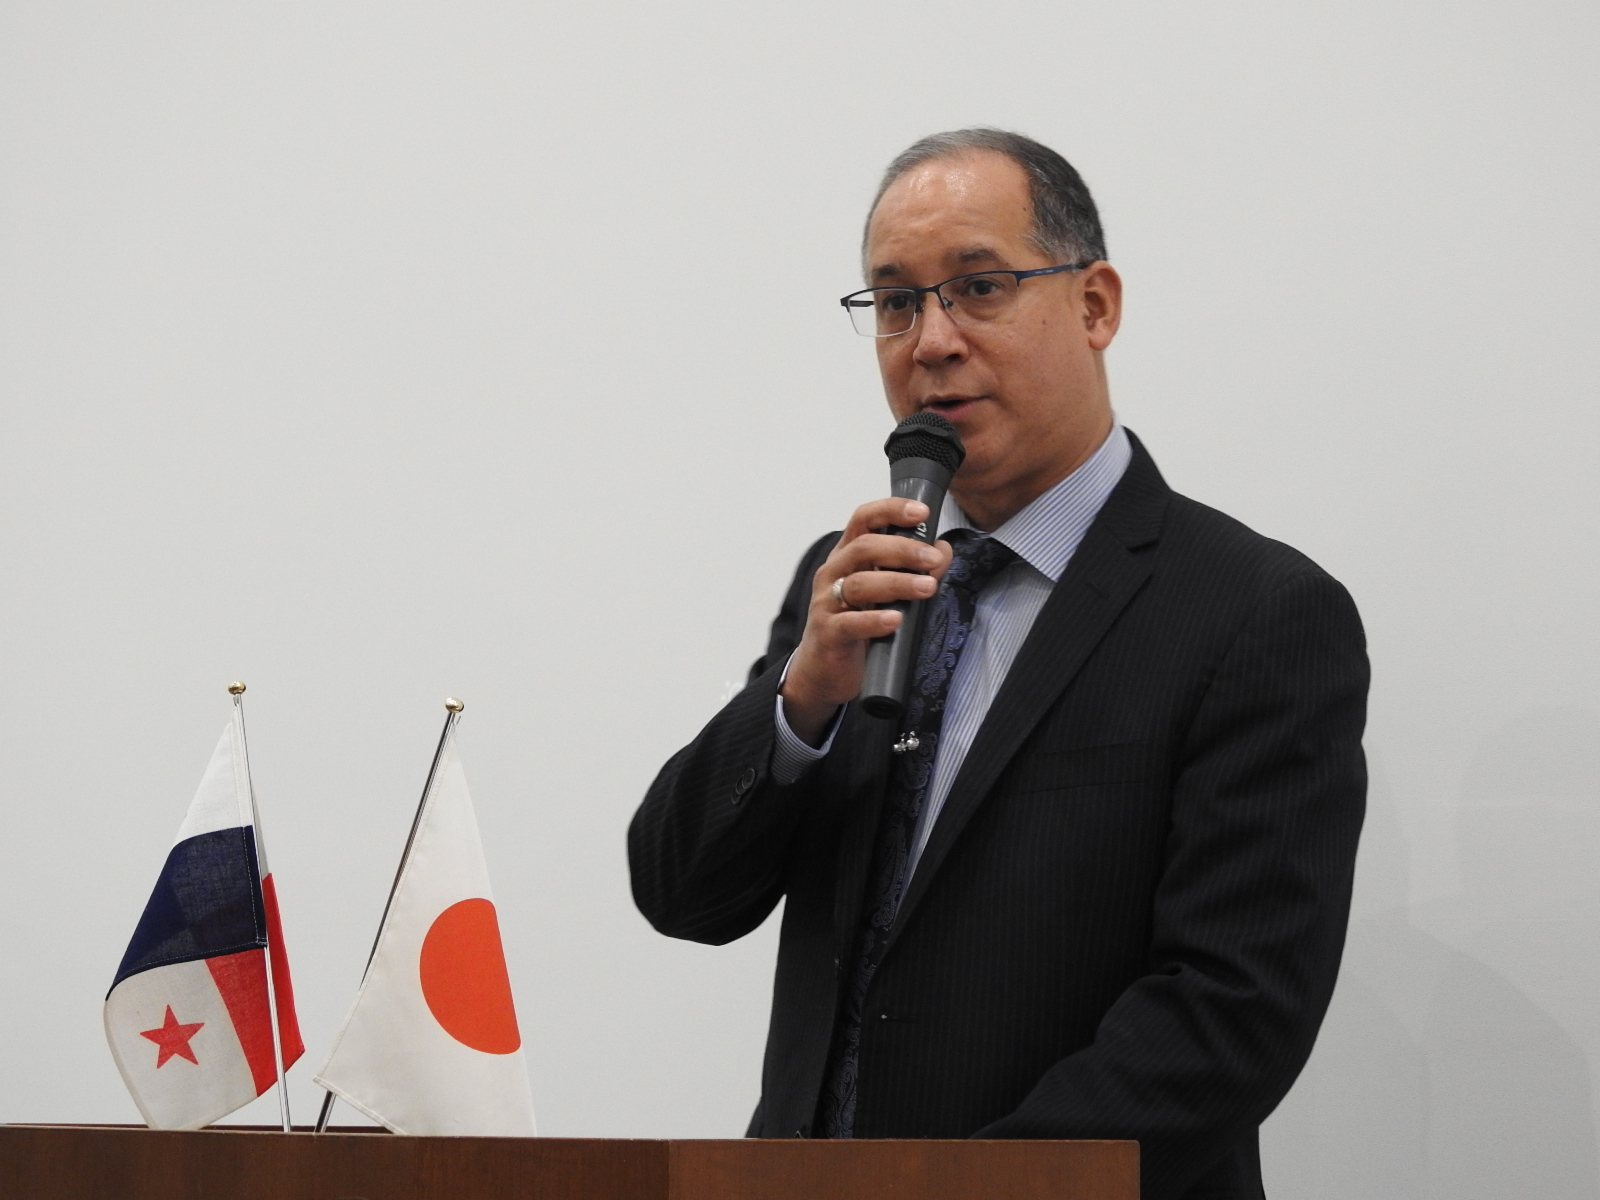 H.E. Ritter Diaz, the Ambassador of Panama to Japan